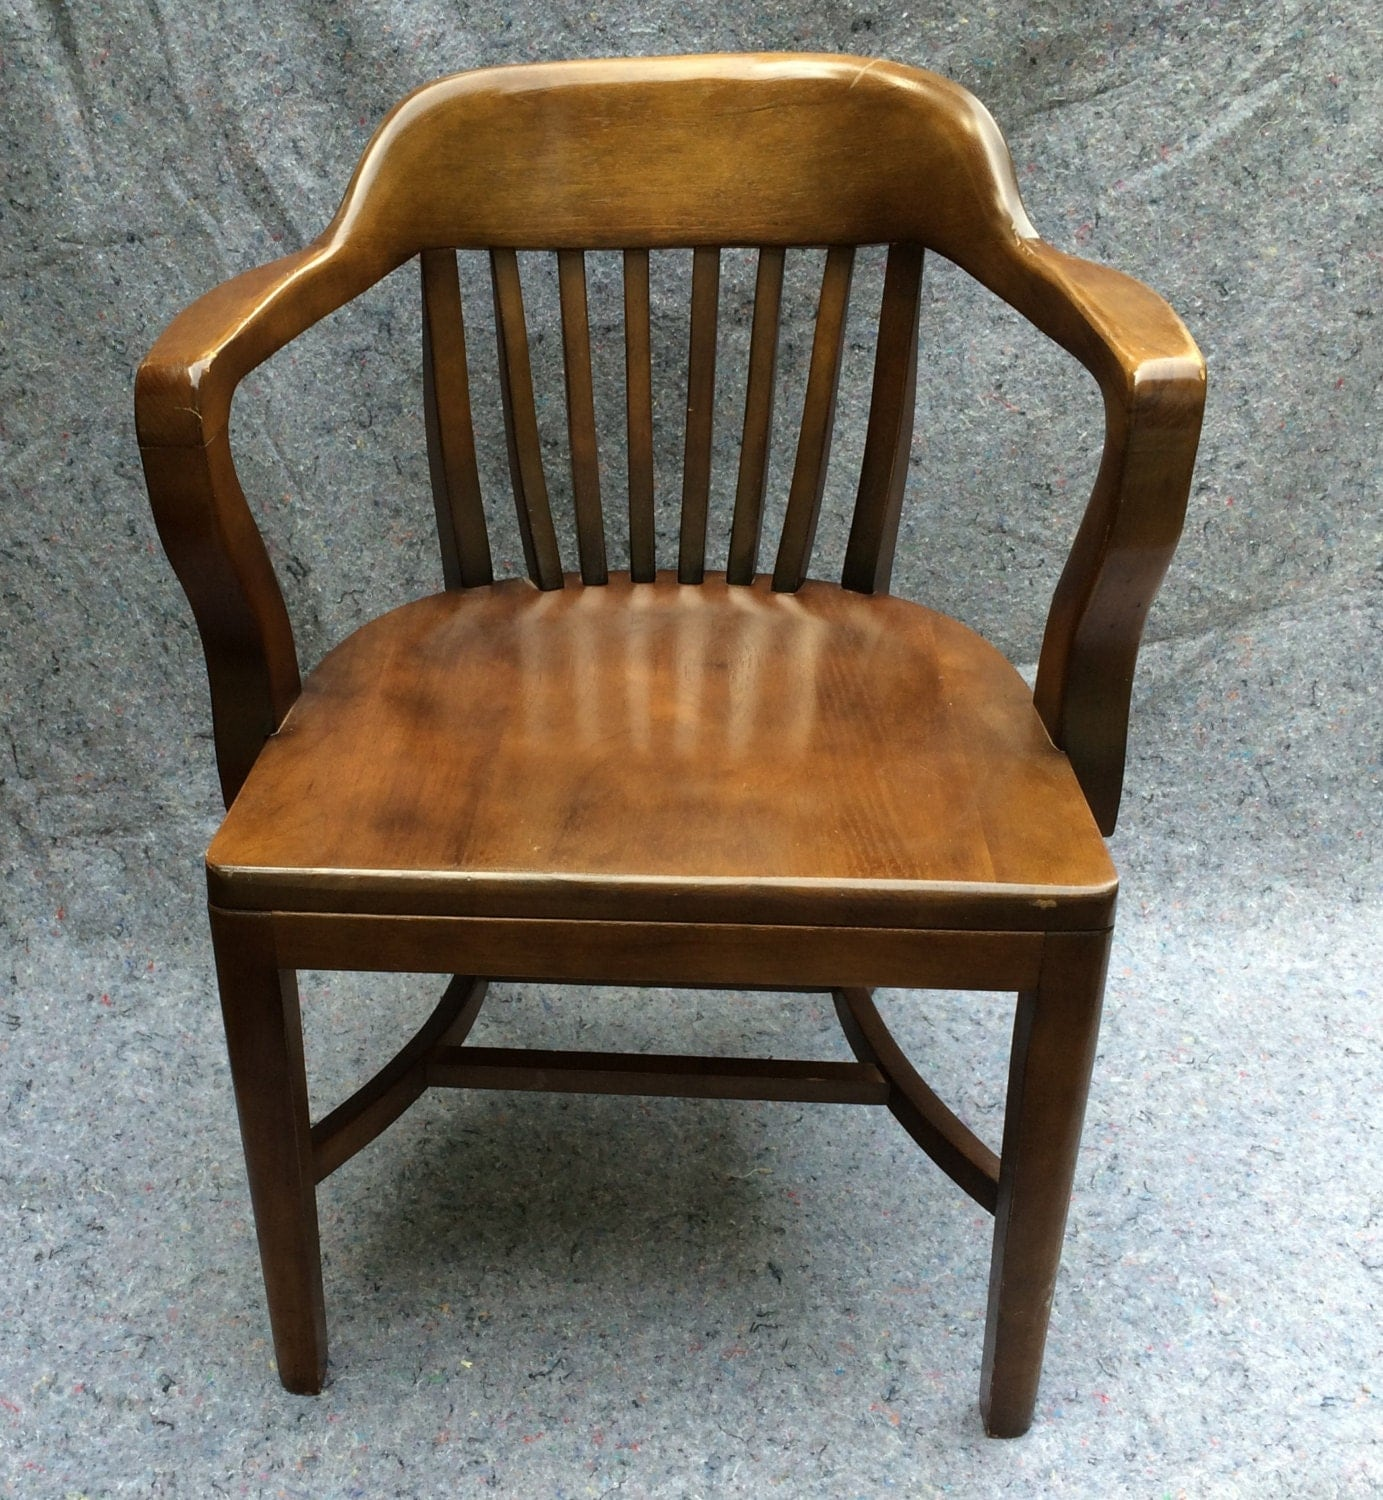 Bankers Chairs Vintage Bankers Chair Library Chair Boling Chair North